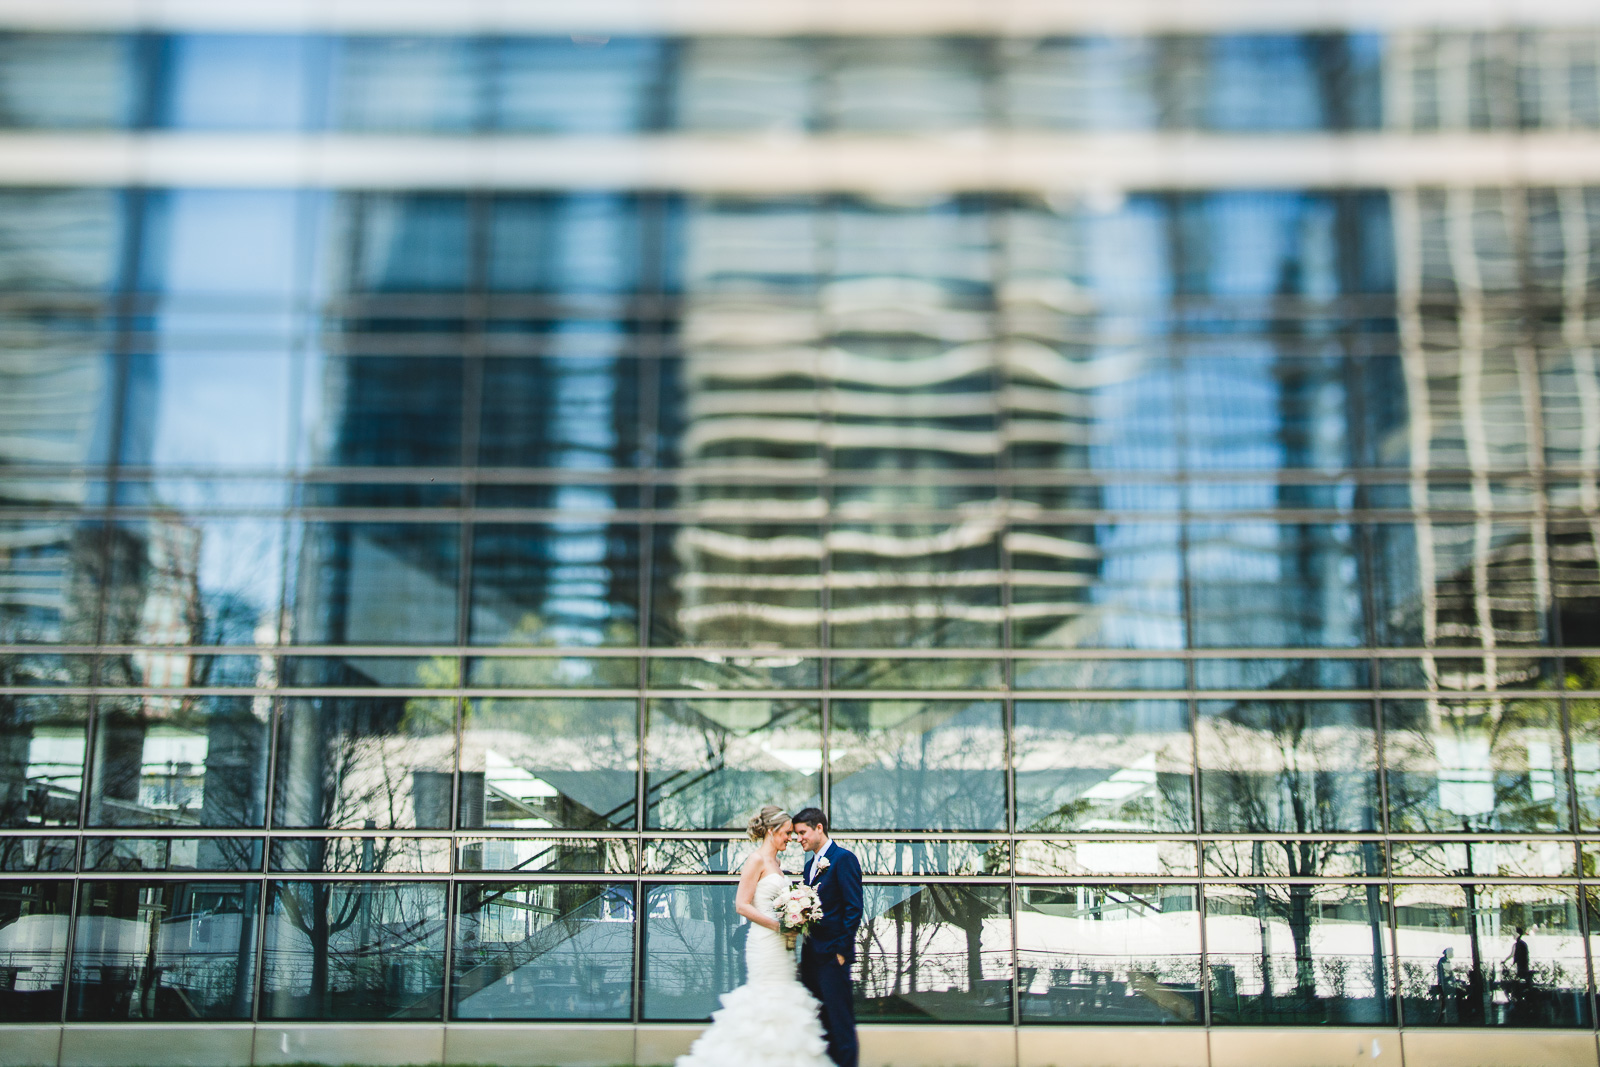 27 chicago wedding photographer best portraits during weddings review 1 - 2018 in Review // My Favorite Chicago Wedding Photography Portraits